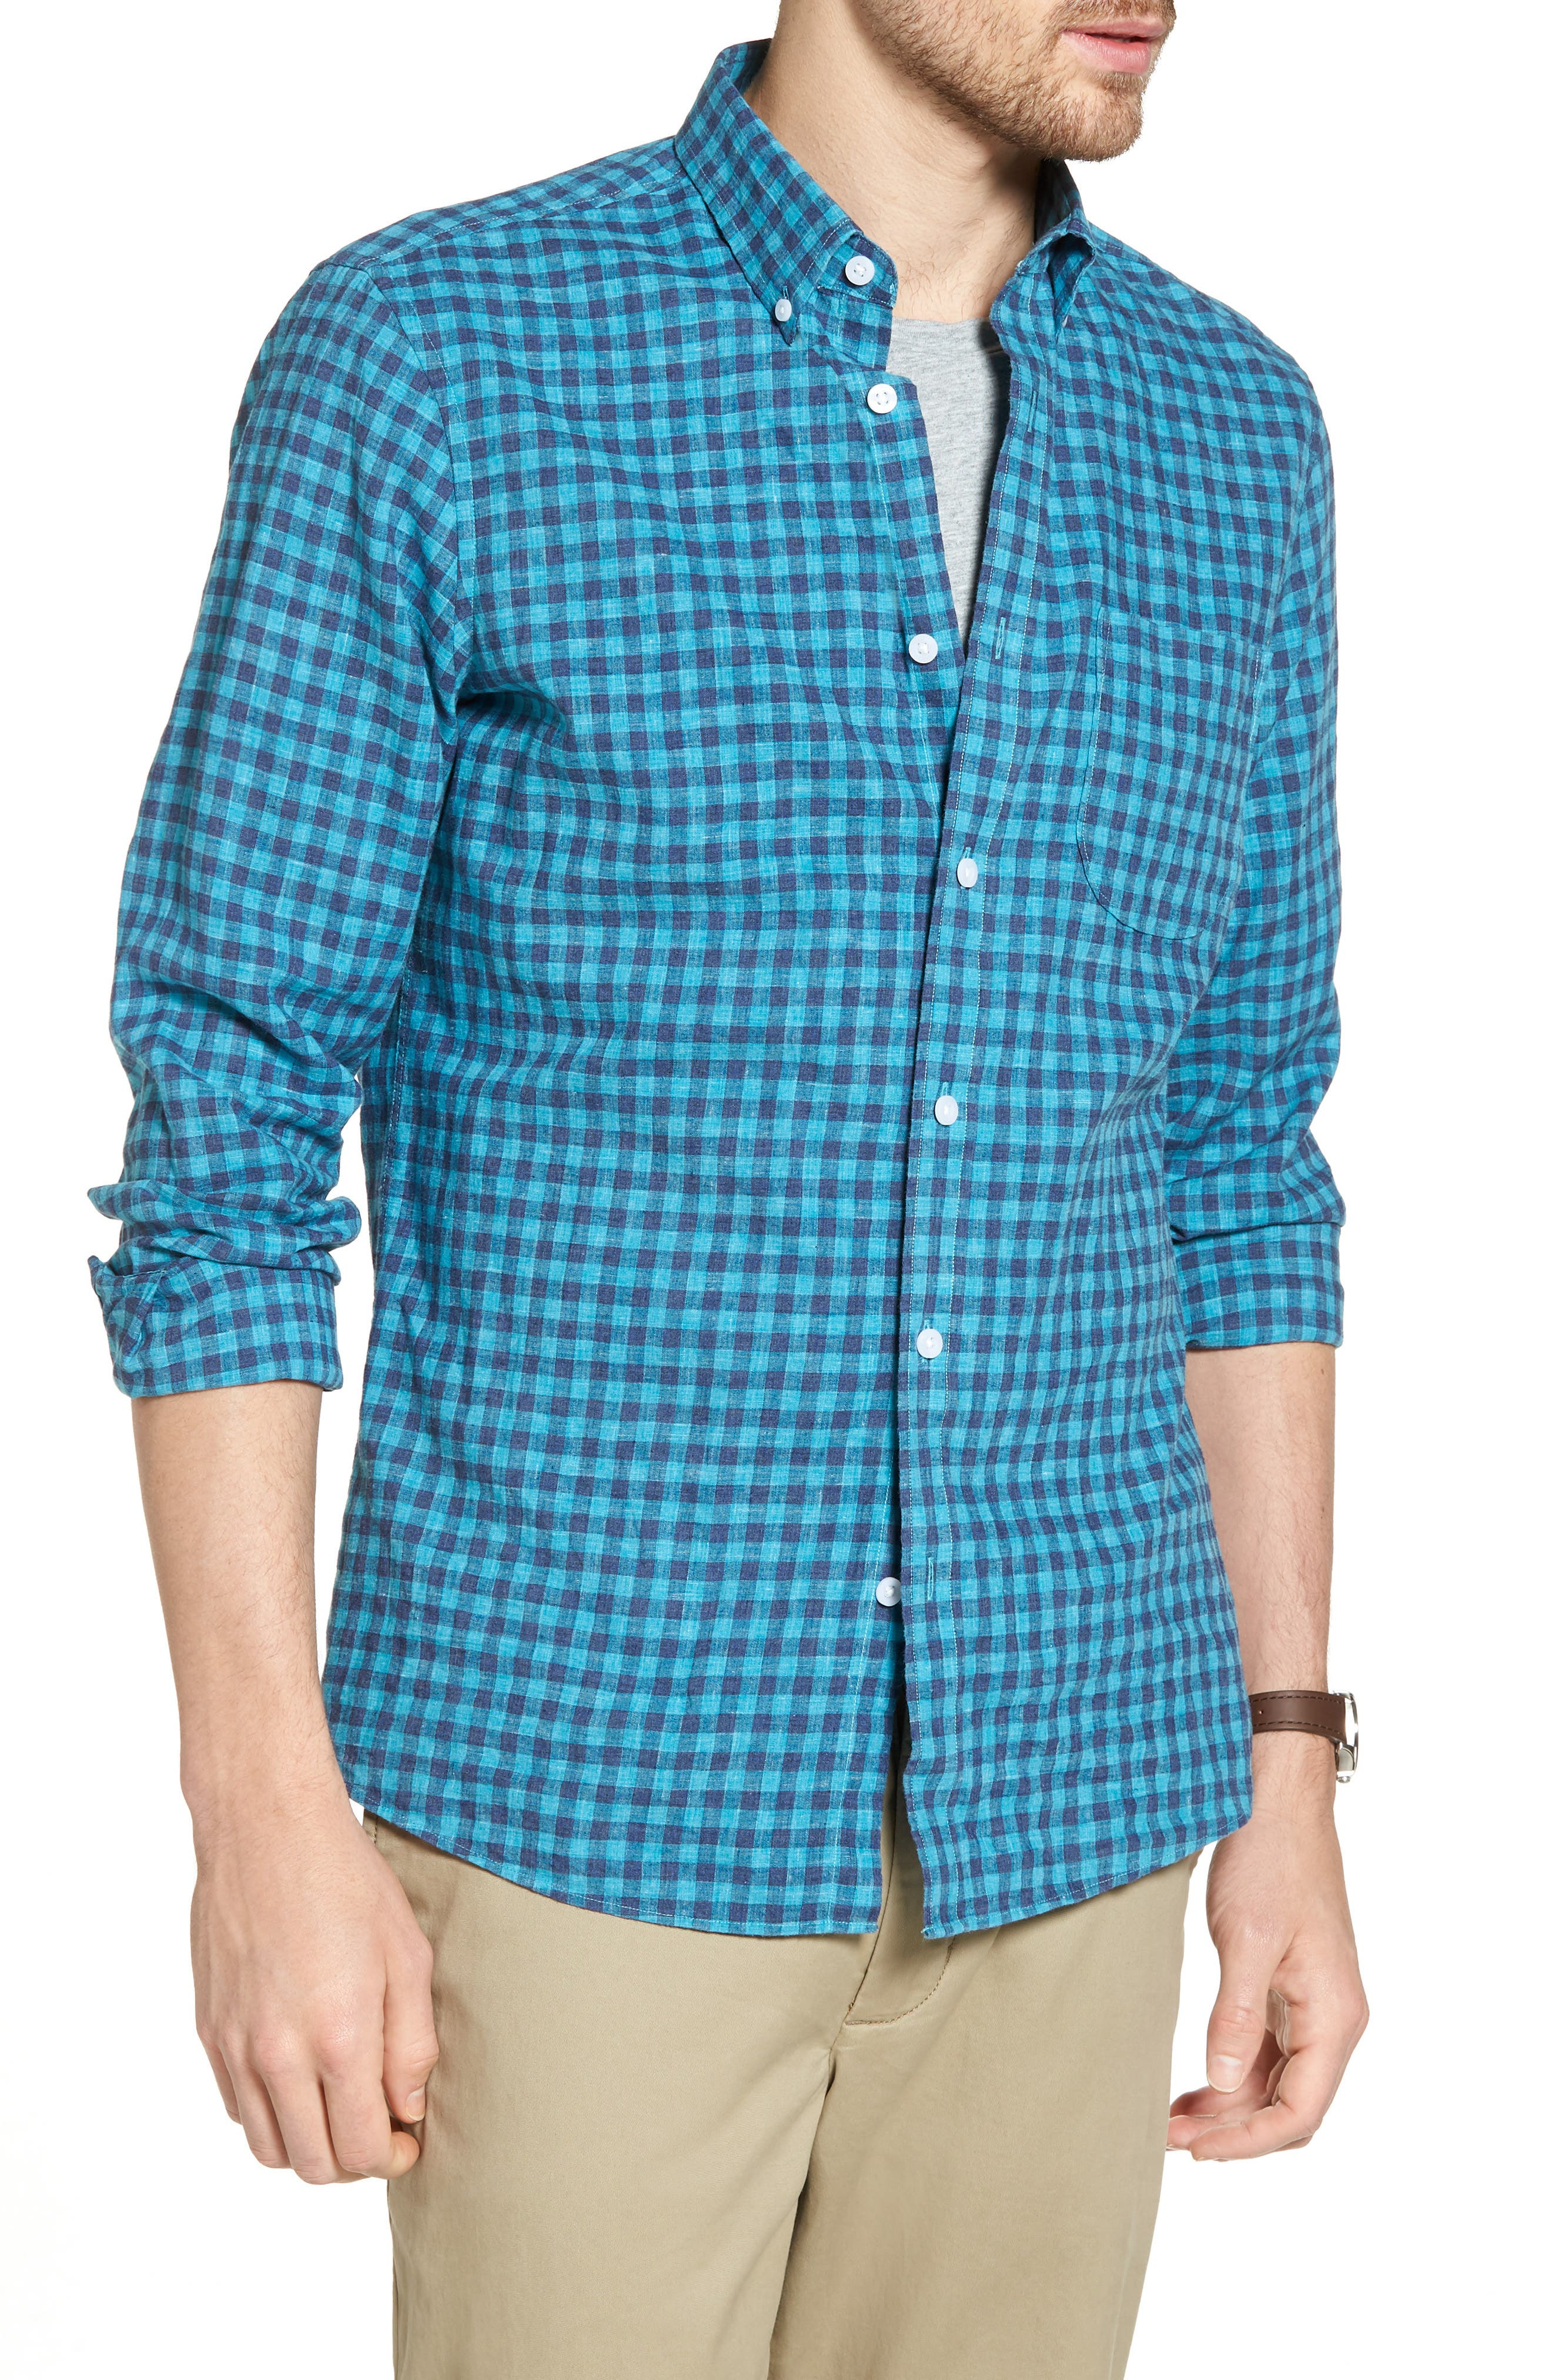 Trim Fit Heather Gingham Linen Blend Sport Shirt,                         Main,                         color, Teal Mosaic Navy Check